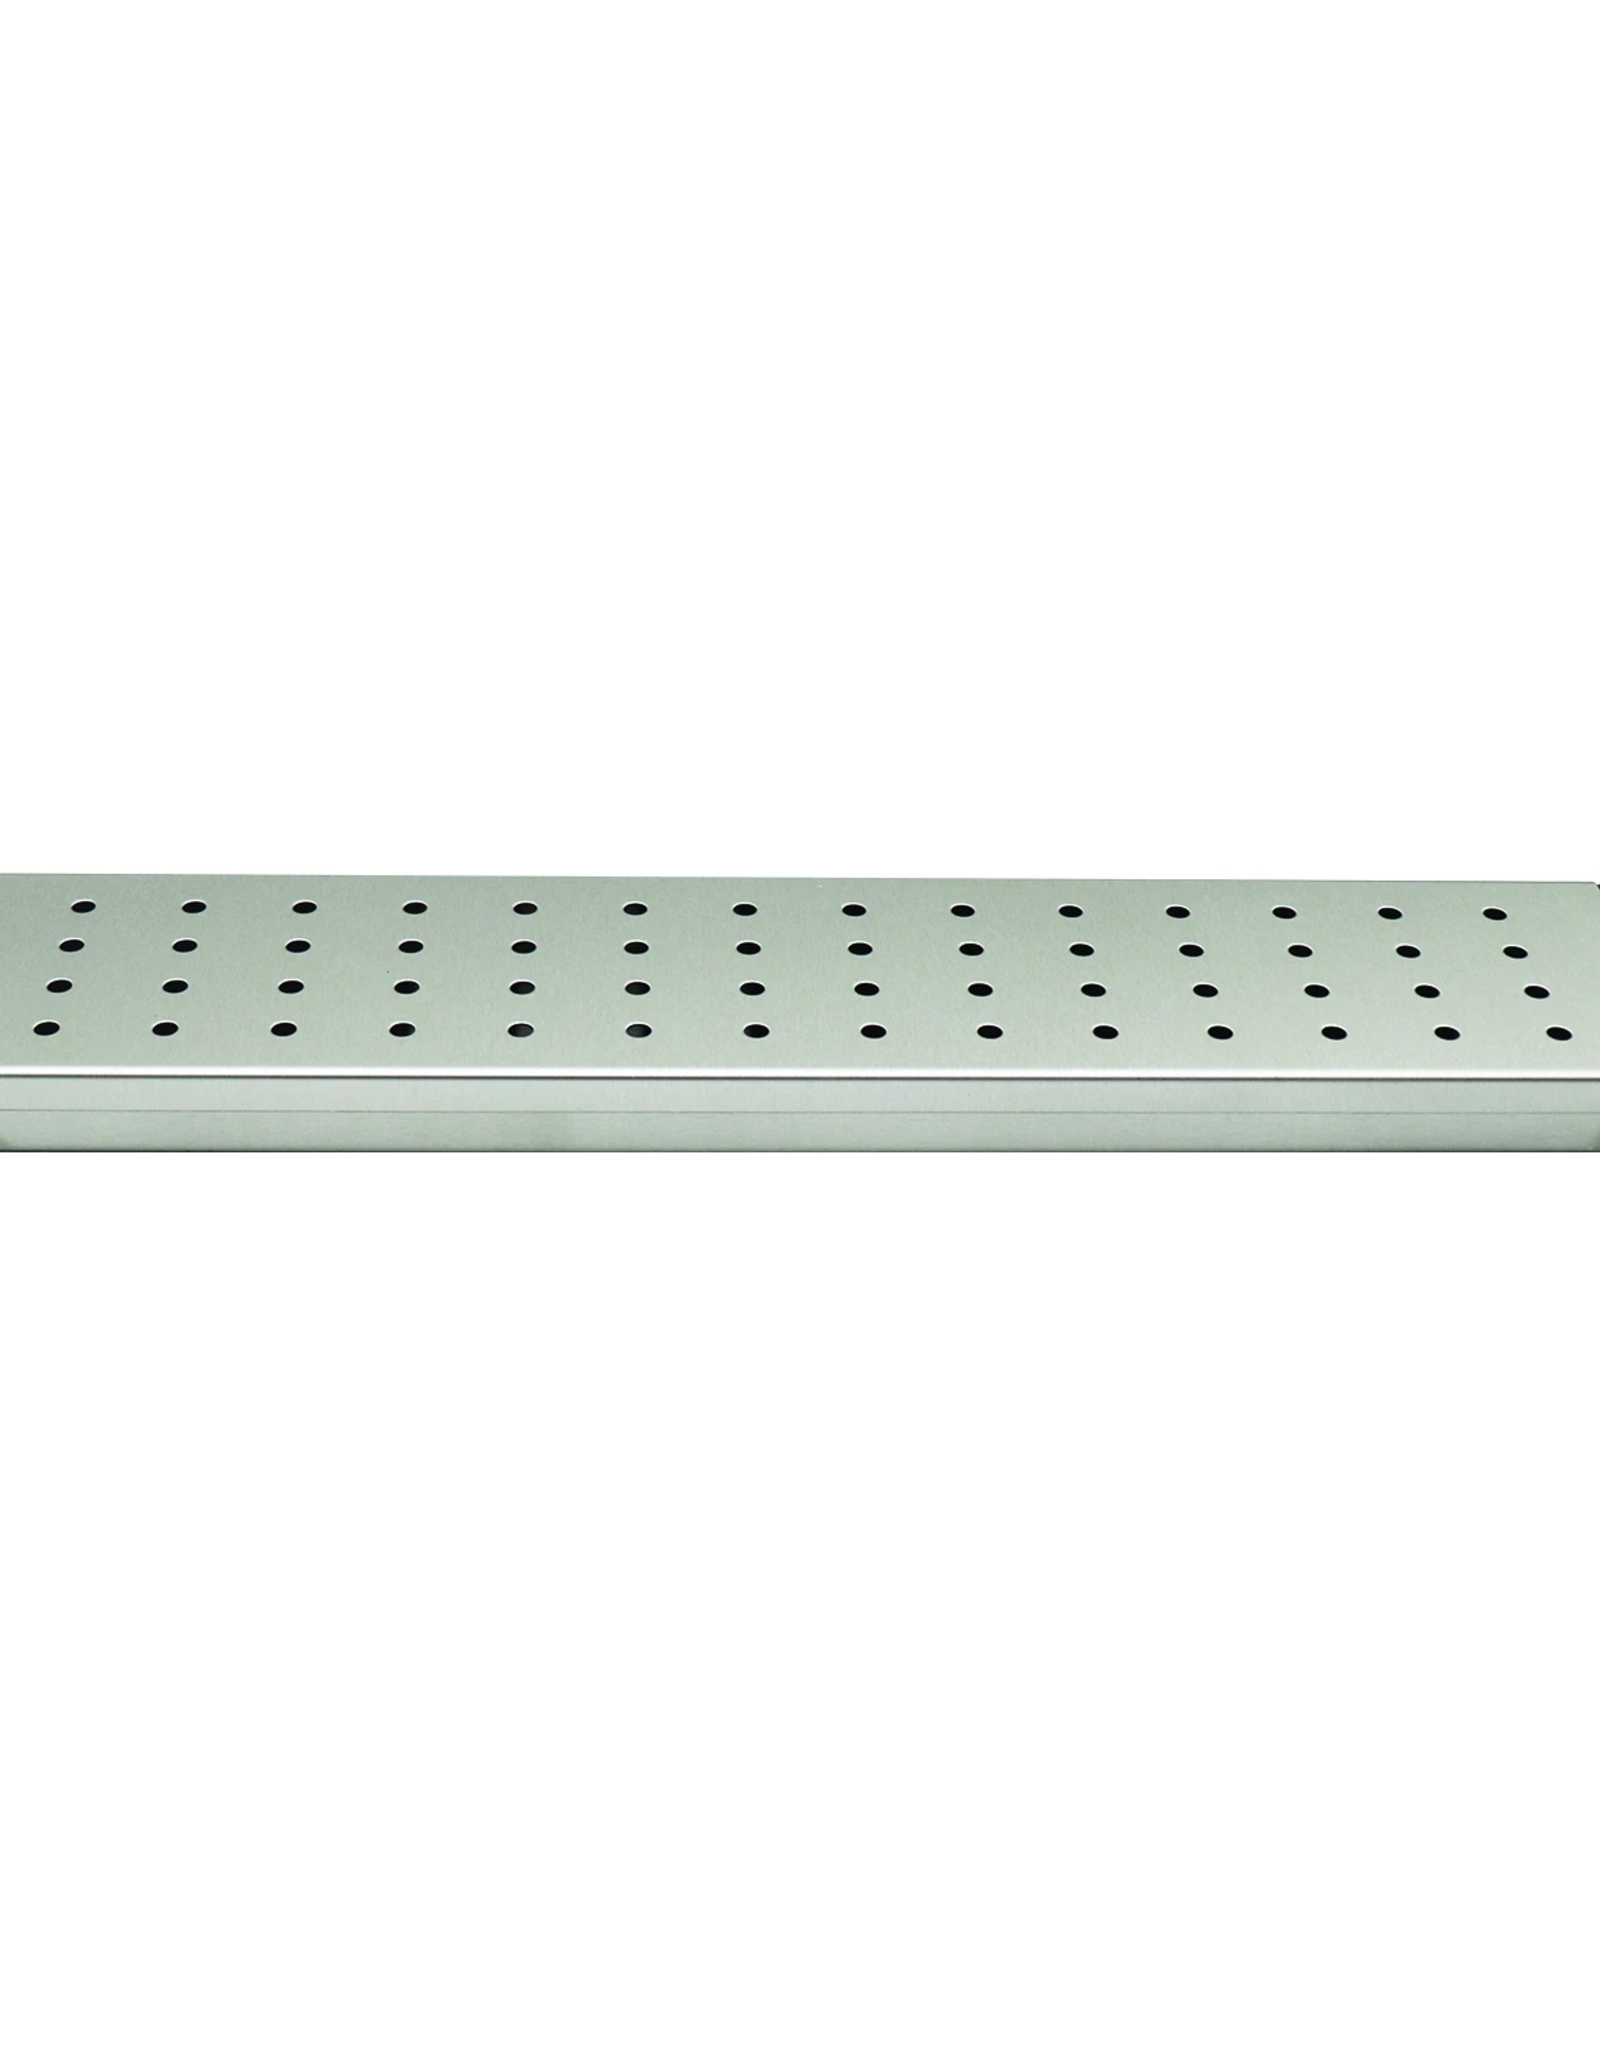 Renaissance Cooking Systems Renaissance Cooking Systems Stainless Steel Smoker Tray for Cutlass Pro Series Grills - RST3042